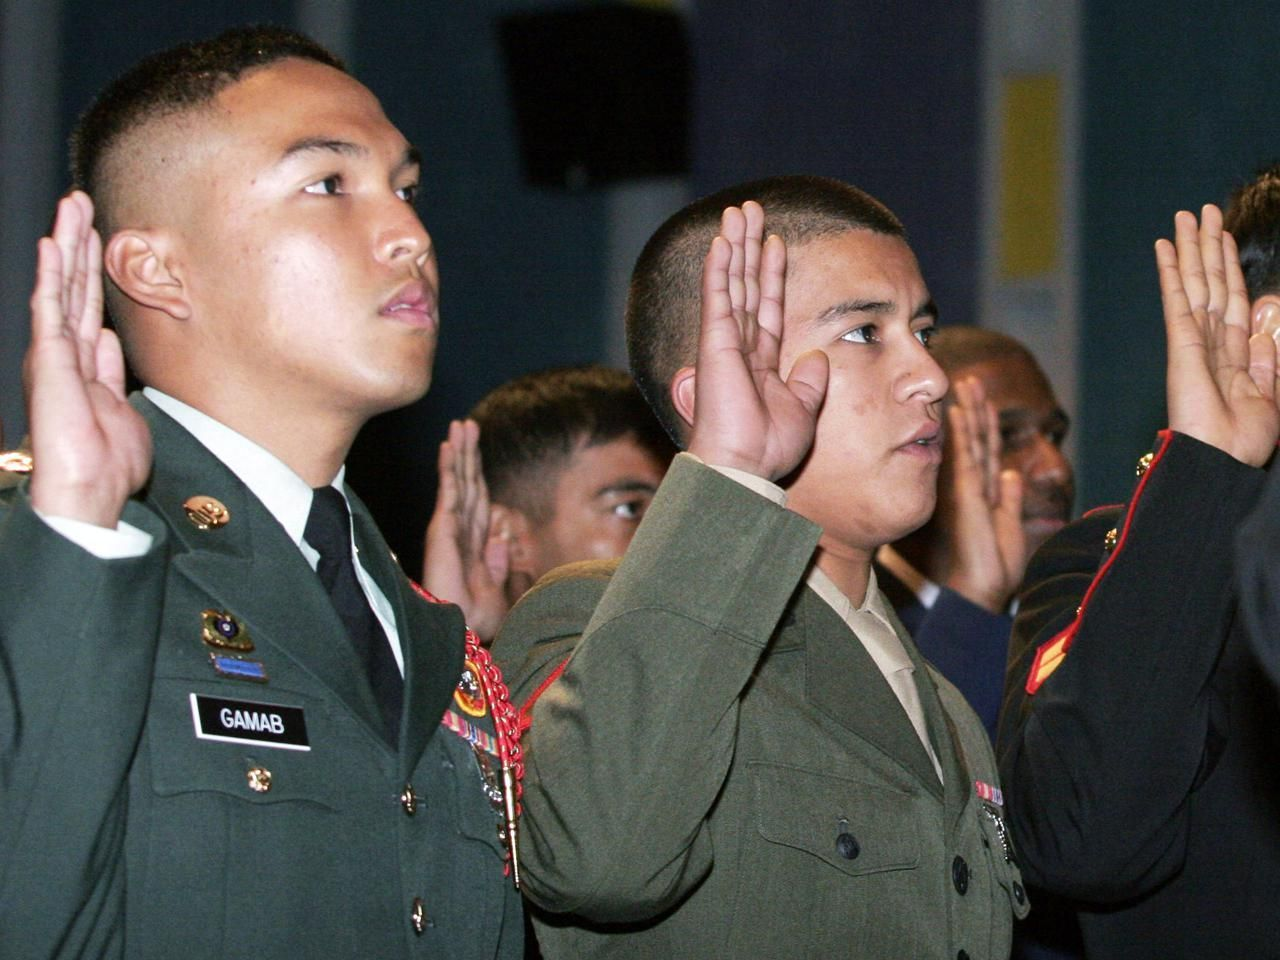 Fair or not, Trump to Allow Immigrants to Become Citizens in Exchange for Military Service